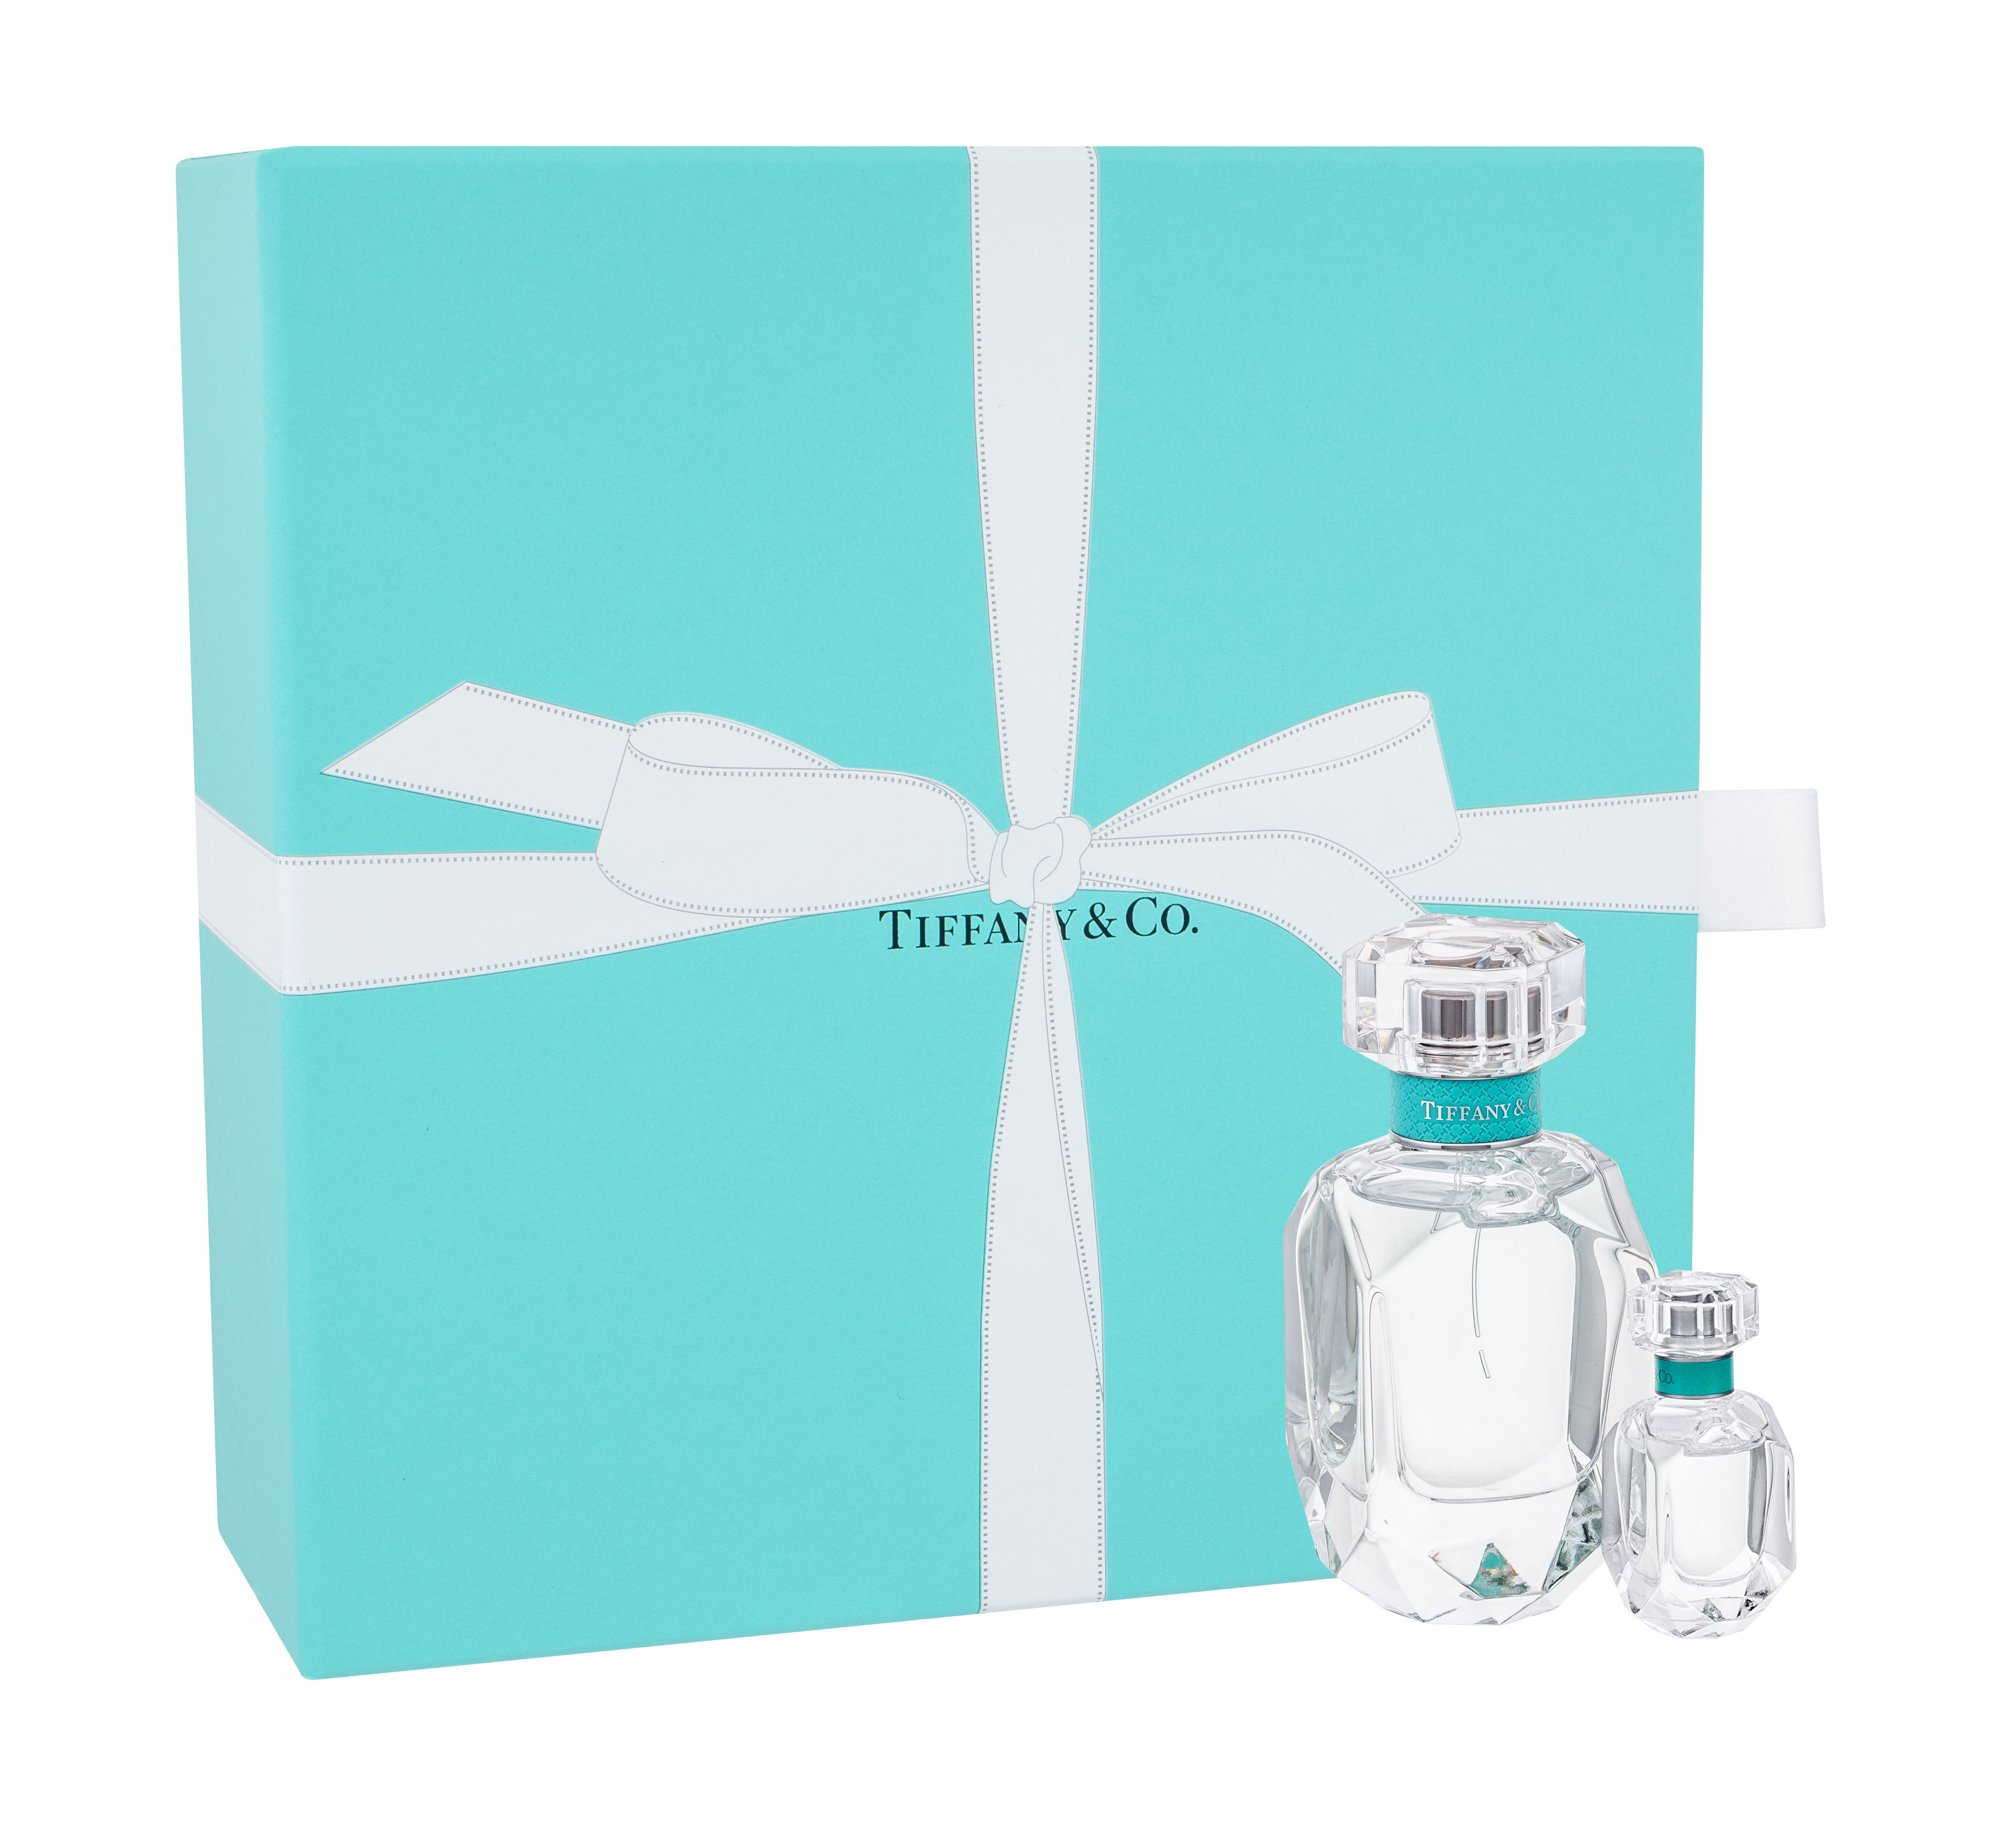 Tiffany & Co. Tiffany & Co. Eau de Parfum 50ml